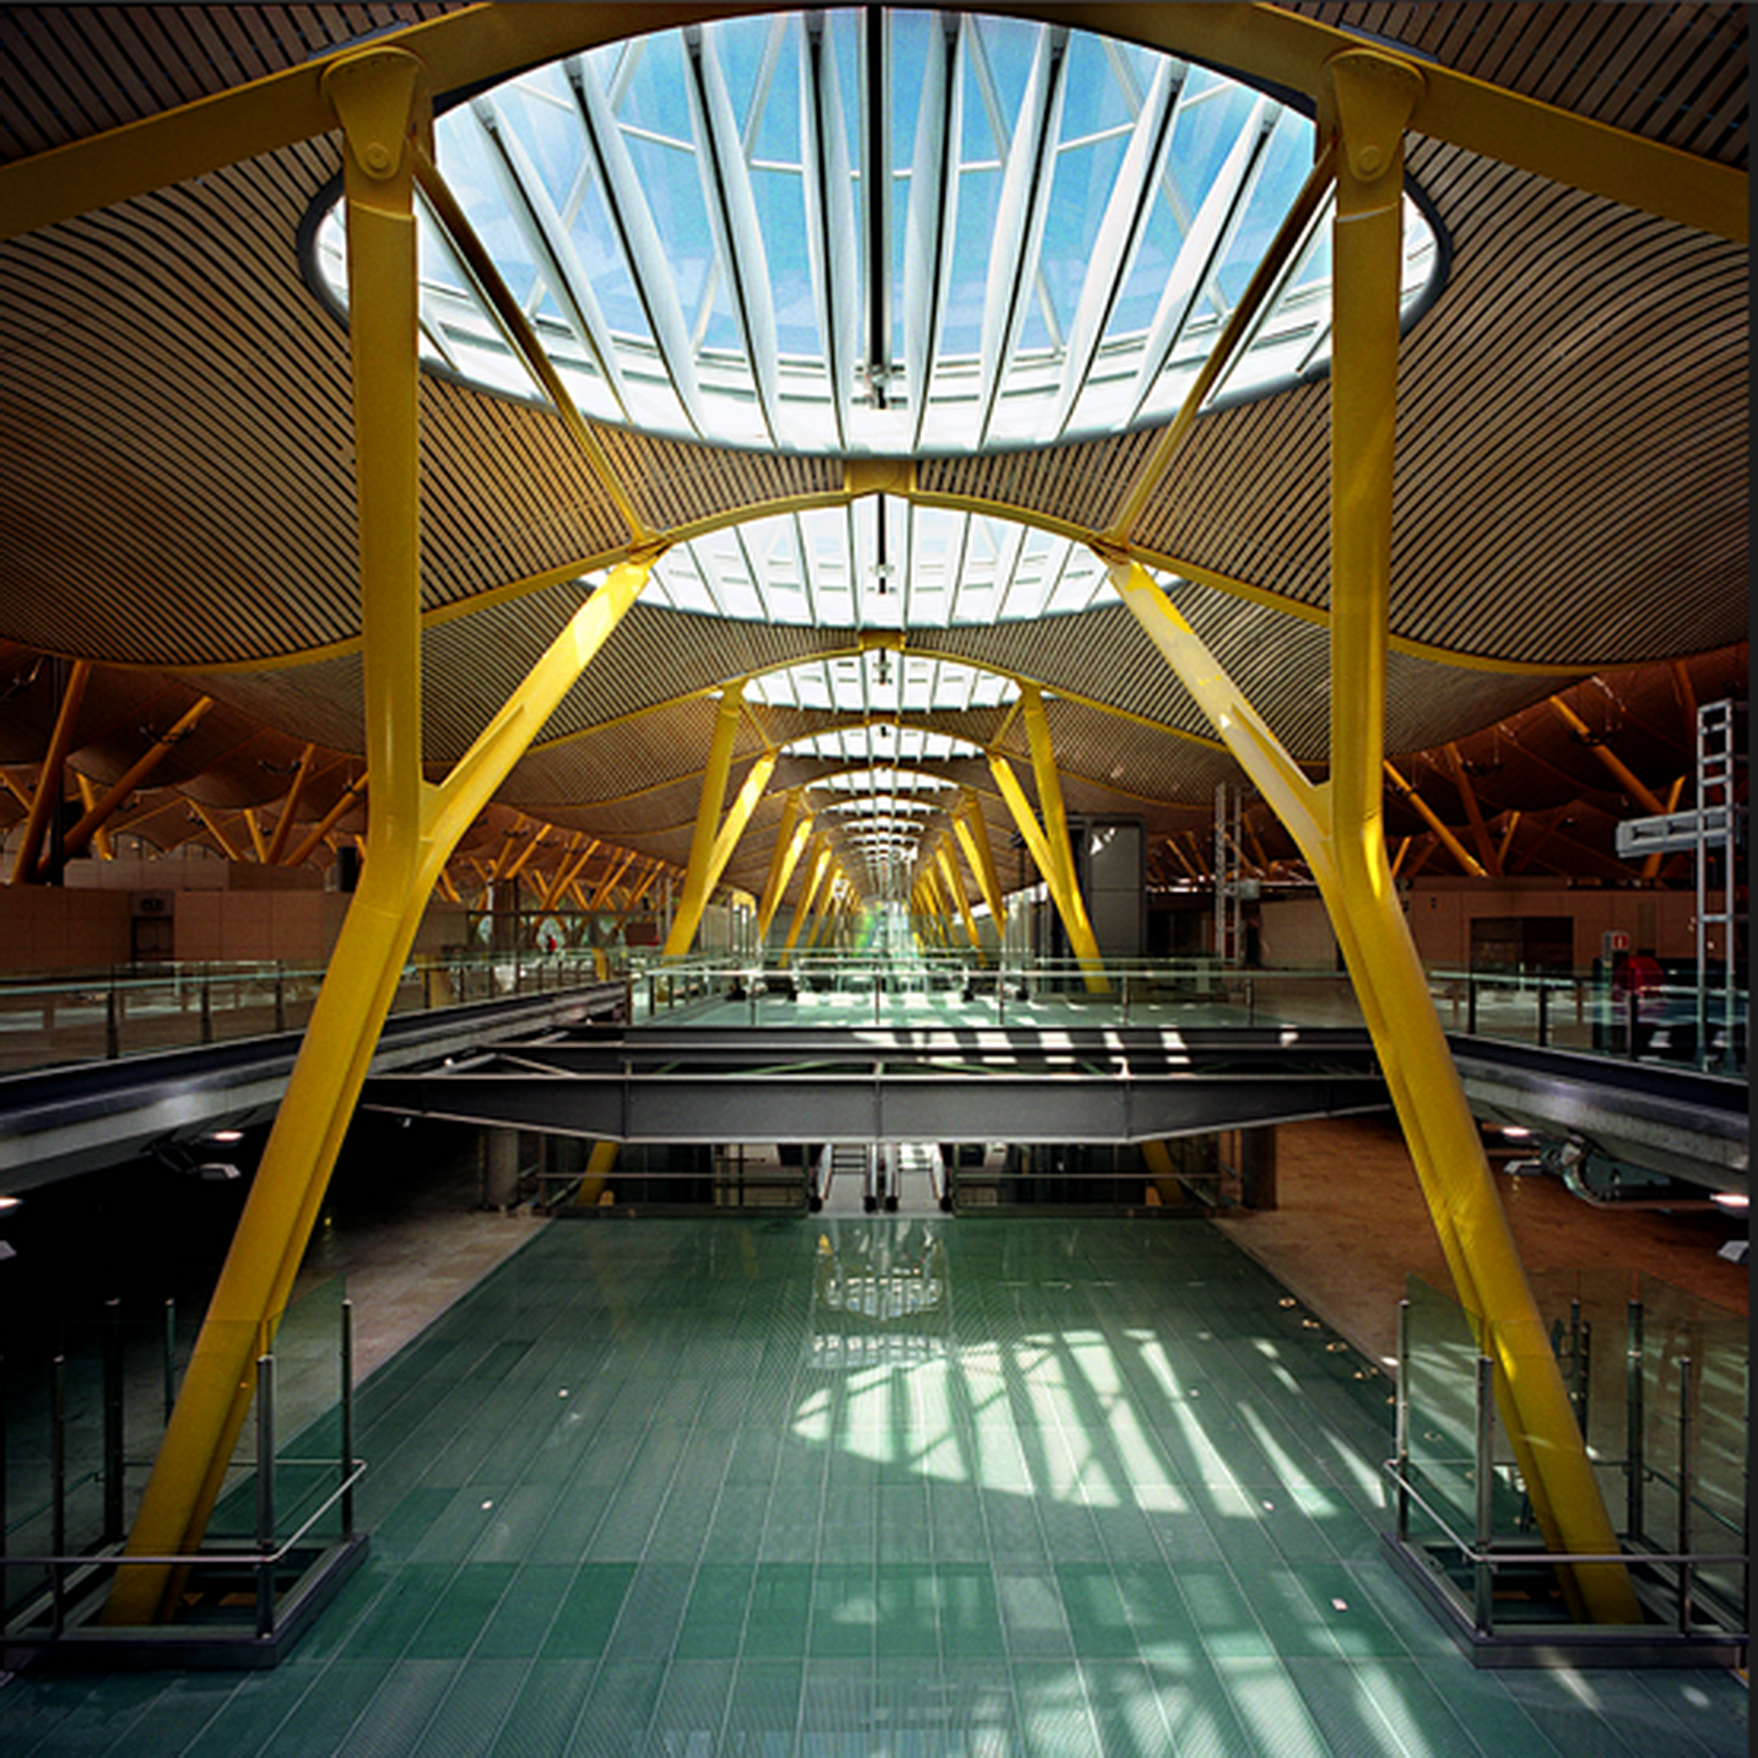 The T4 as One of the Greatest Architectural Works of the 21st Century